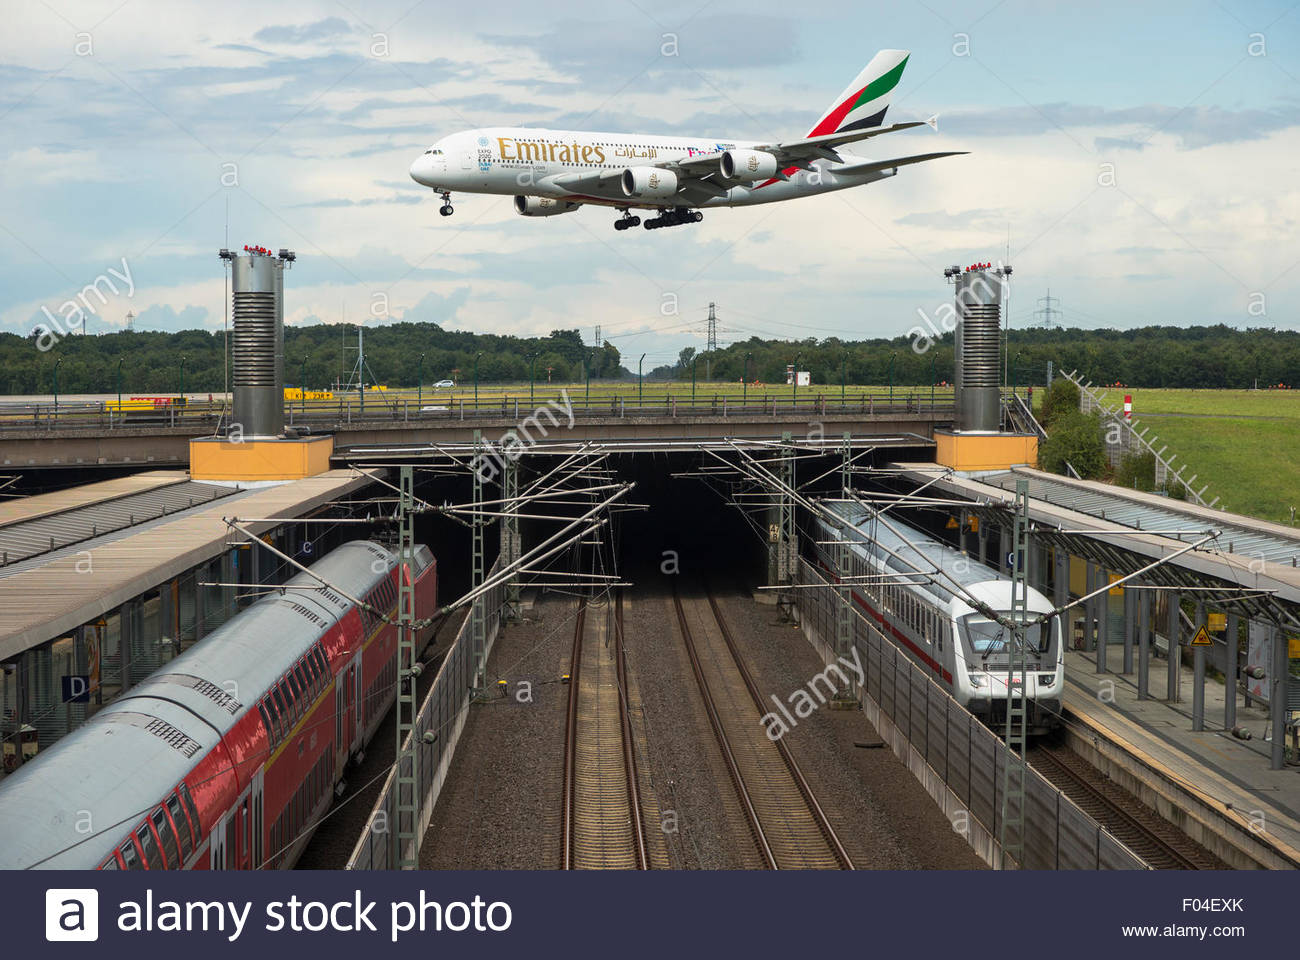 airbus a380 approaching runway duesseldorf airport train station rail stock photo royalty free. Black Bedroom Furniture Sets. Home Design Ideas